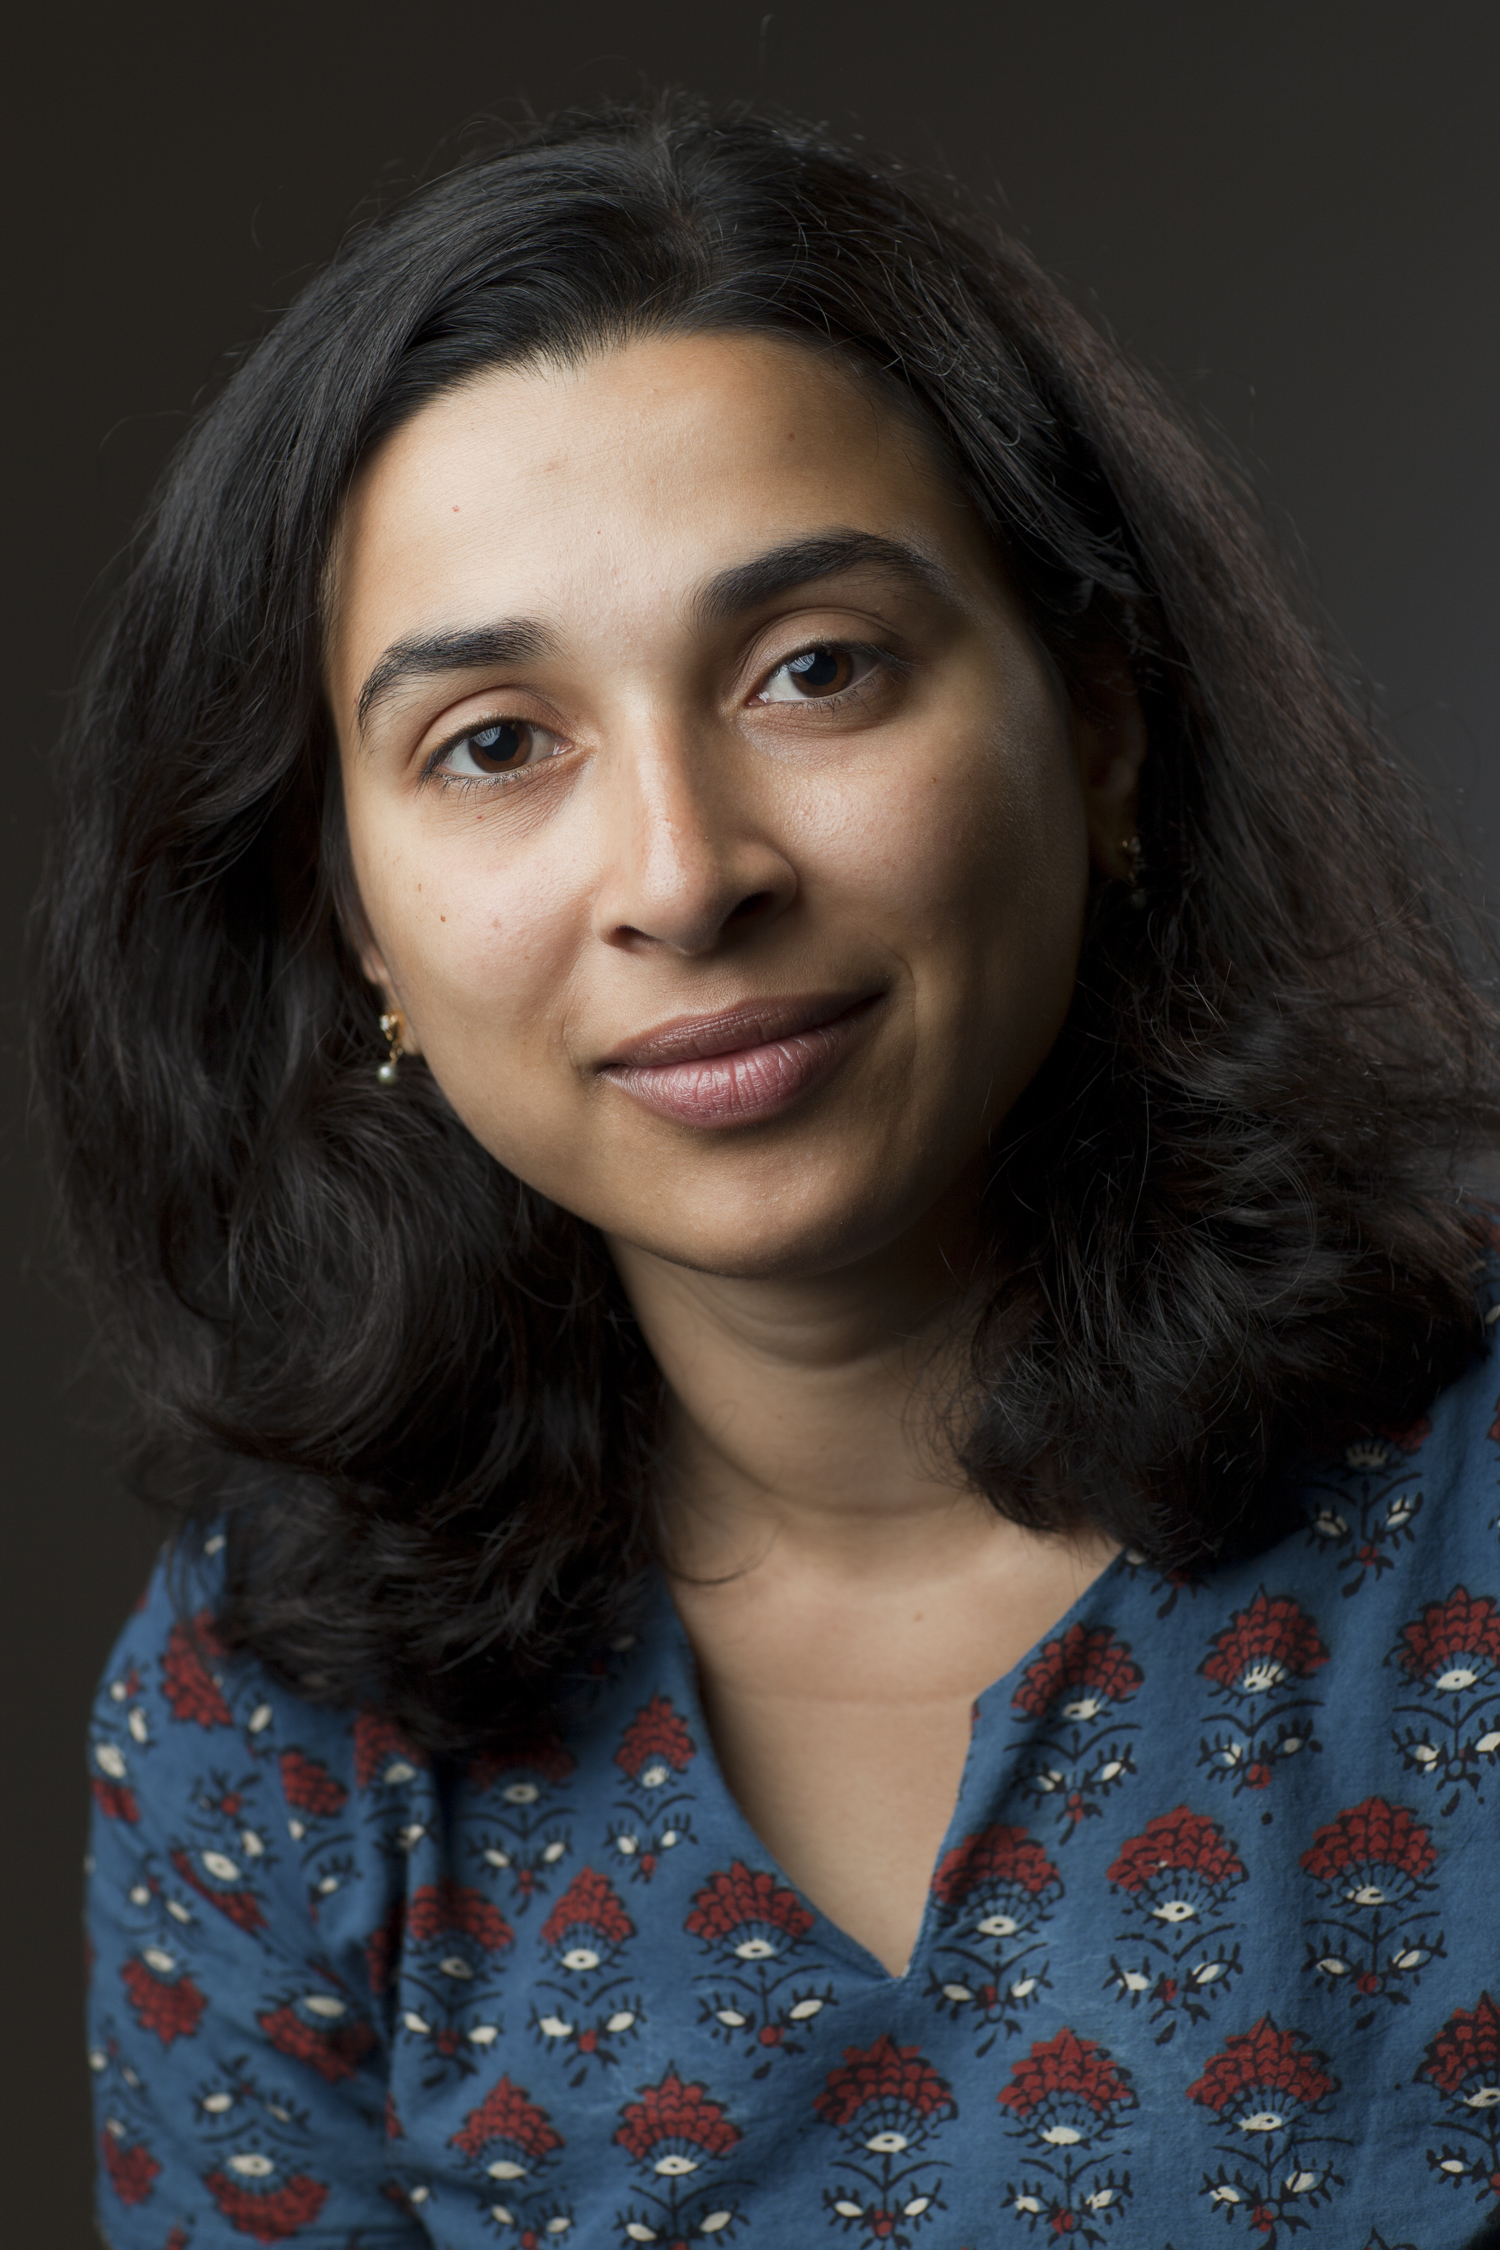 Headshot of Nandini Ananth